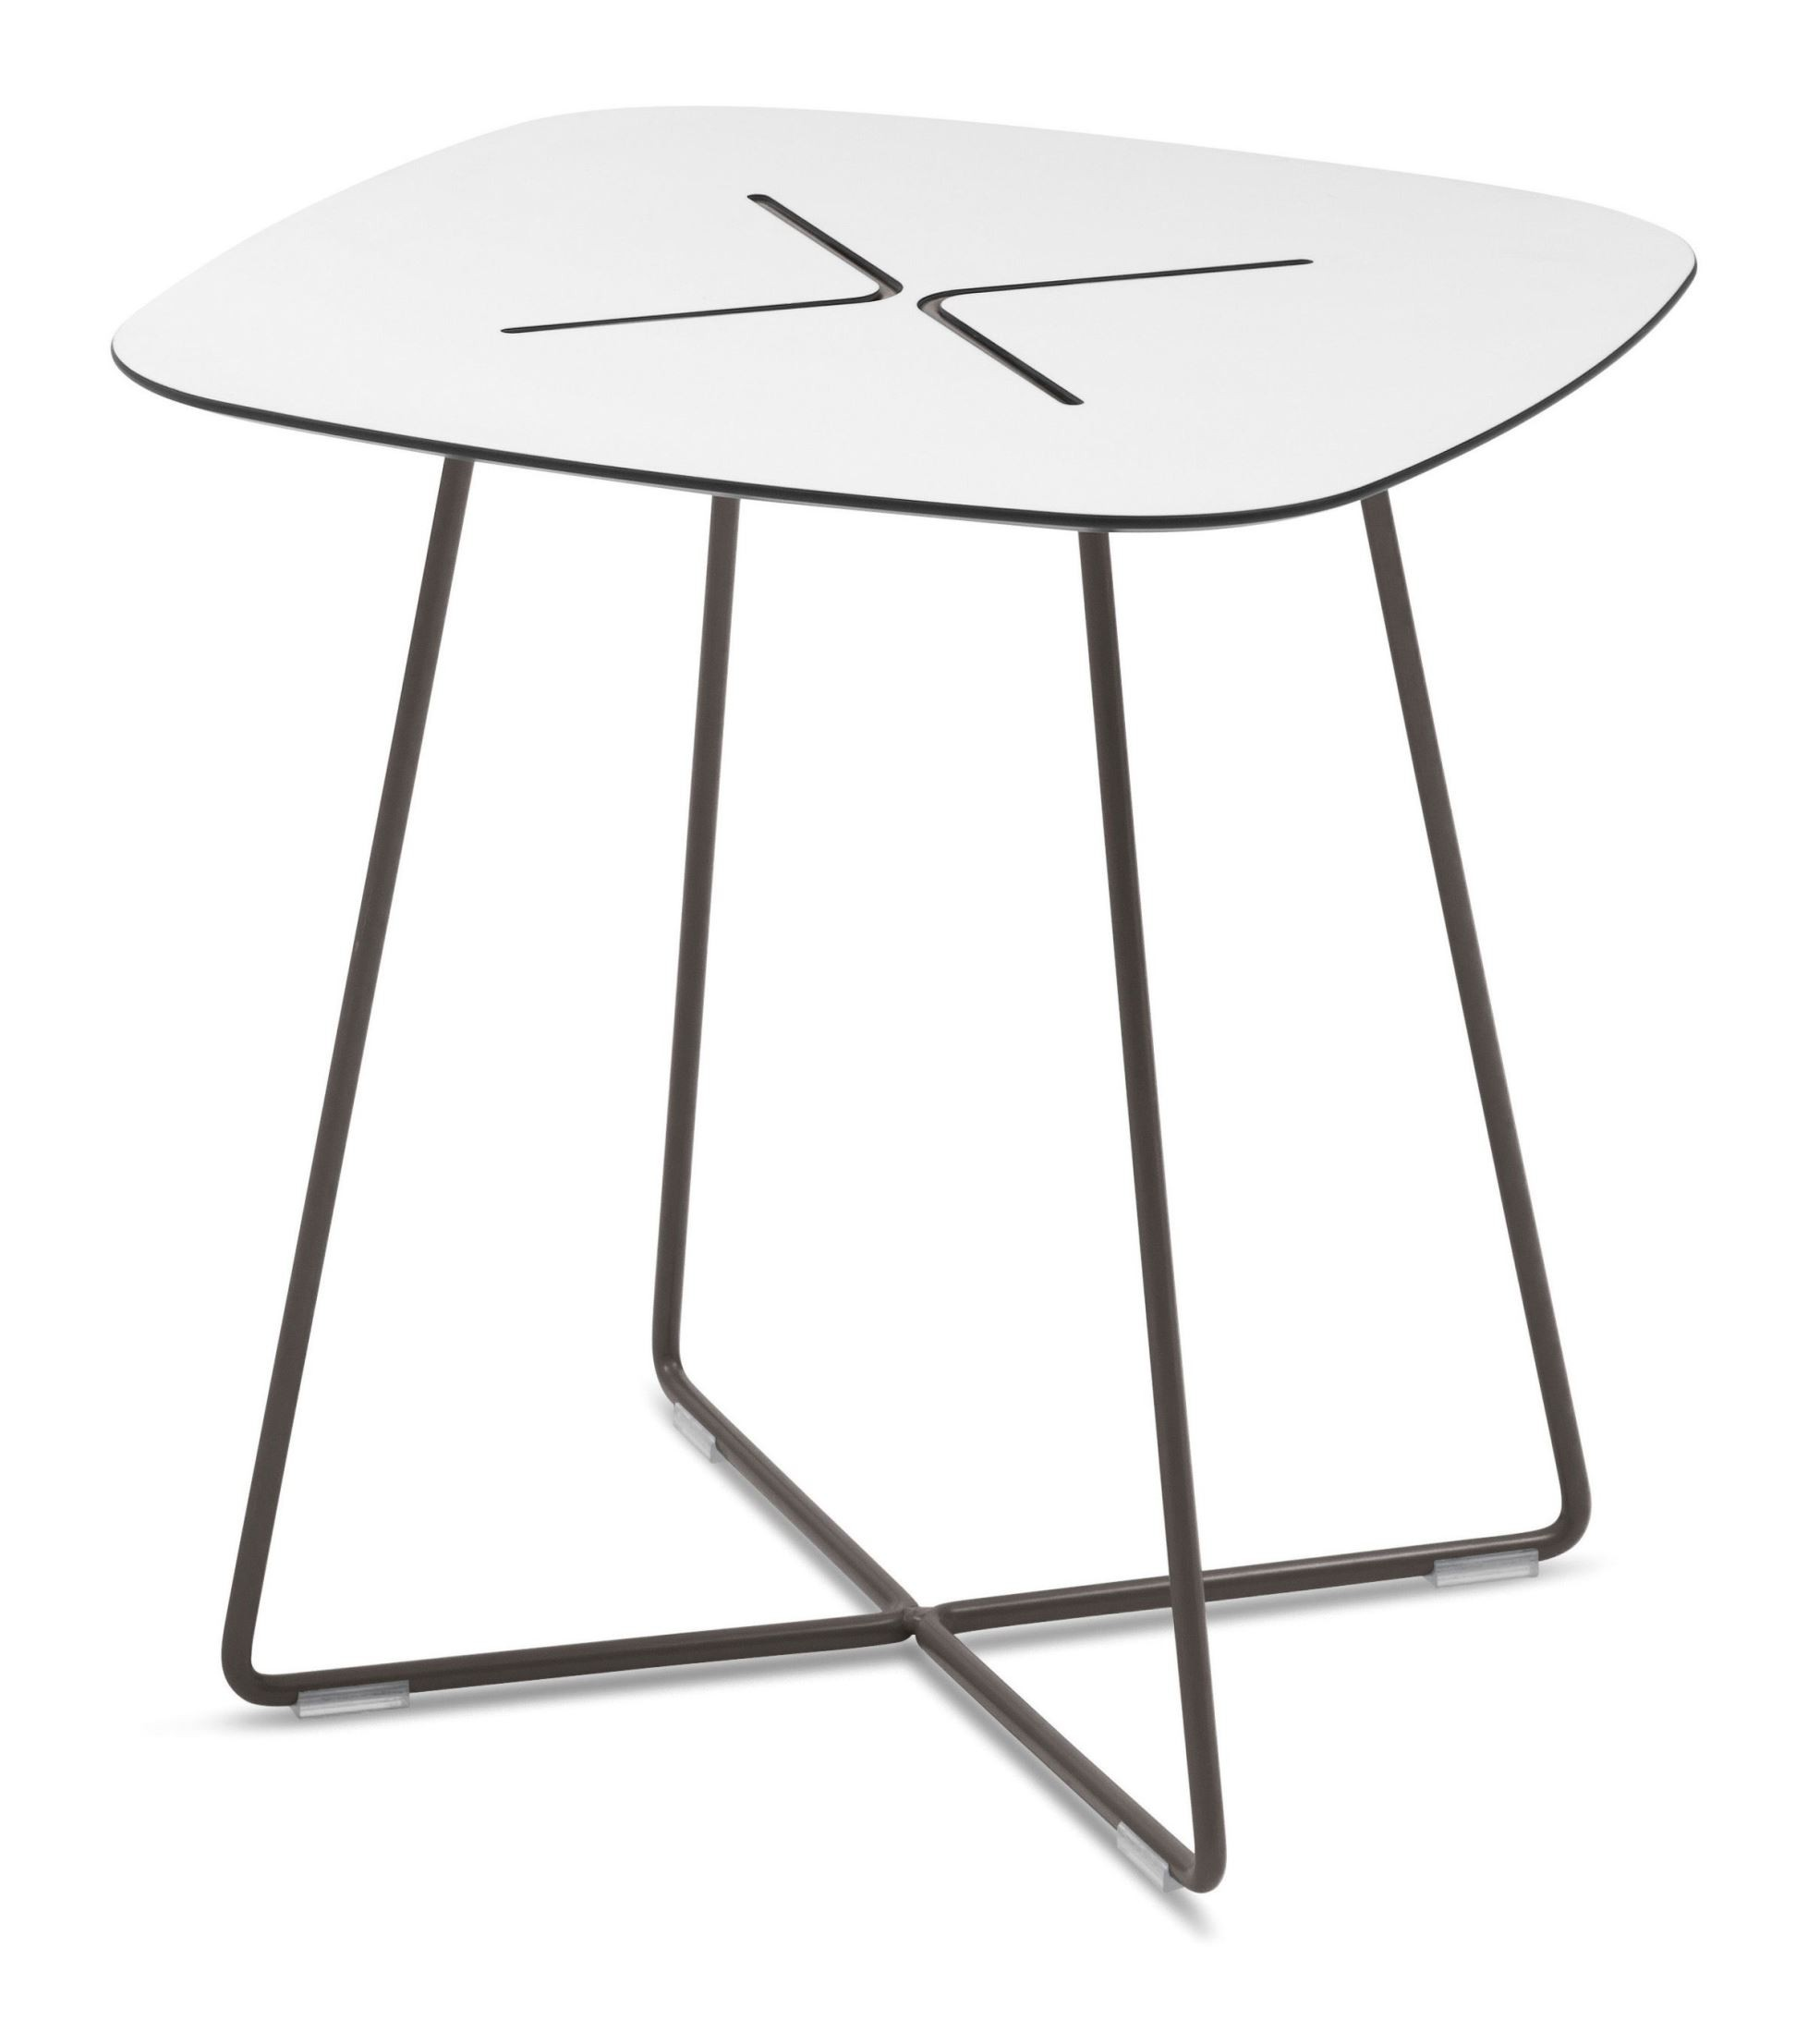 Low Coffee Table Square: Cross Anthracite Low Square Coffee Table From Domitalia